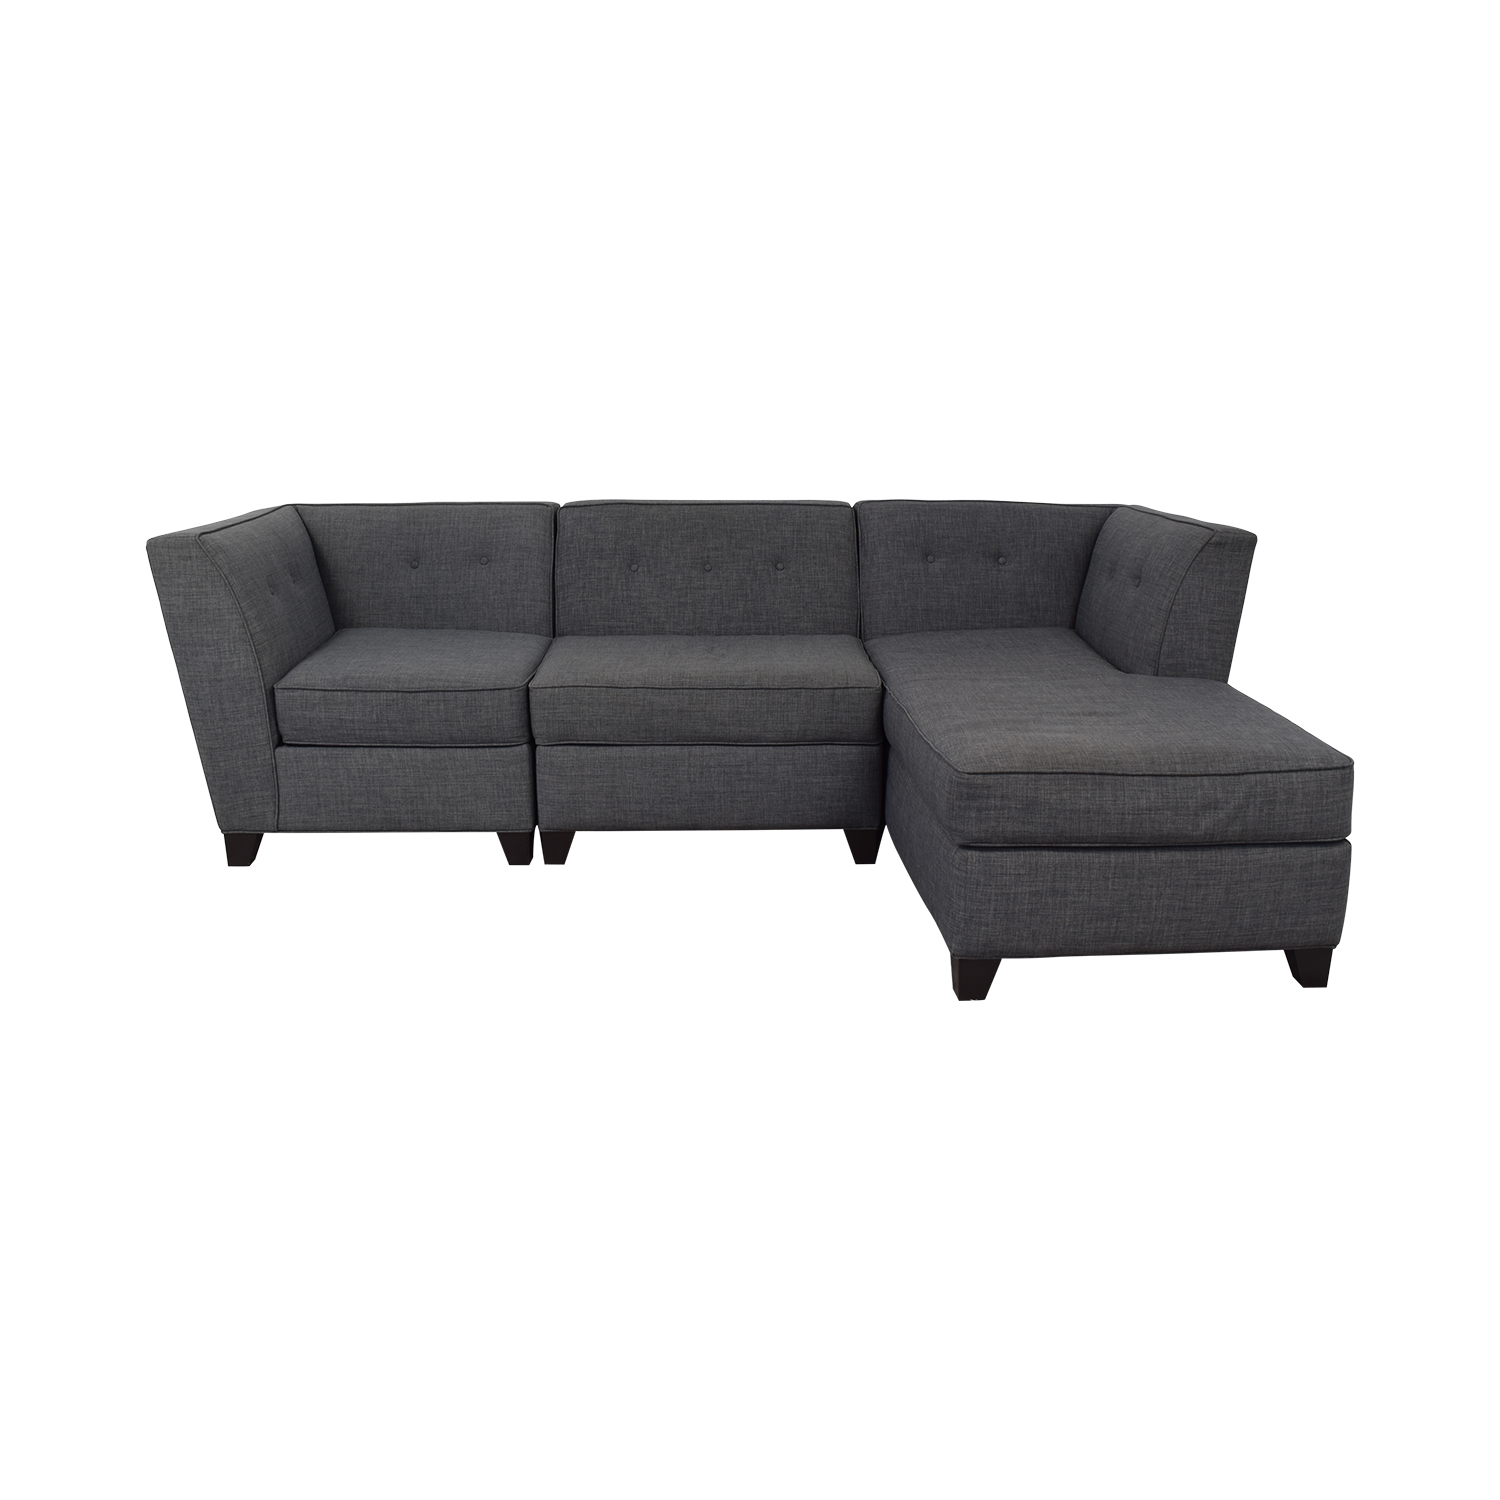 shop Macy's Three-Piece Chaise Sectional Sofa Macy's Sectionals